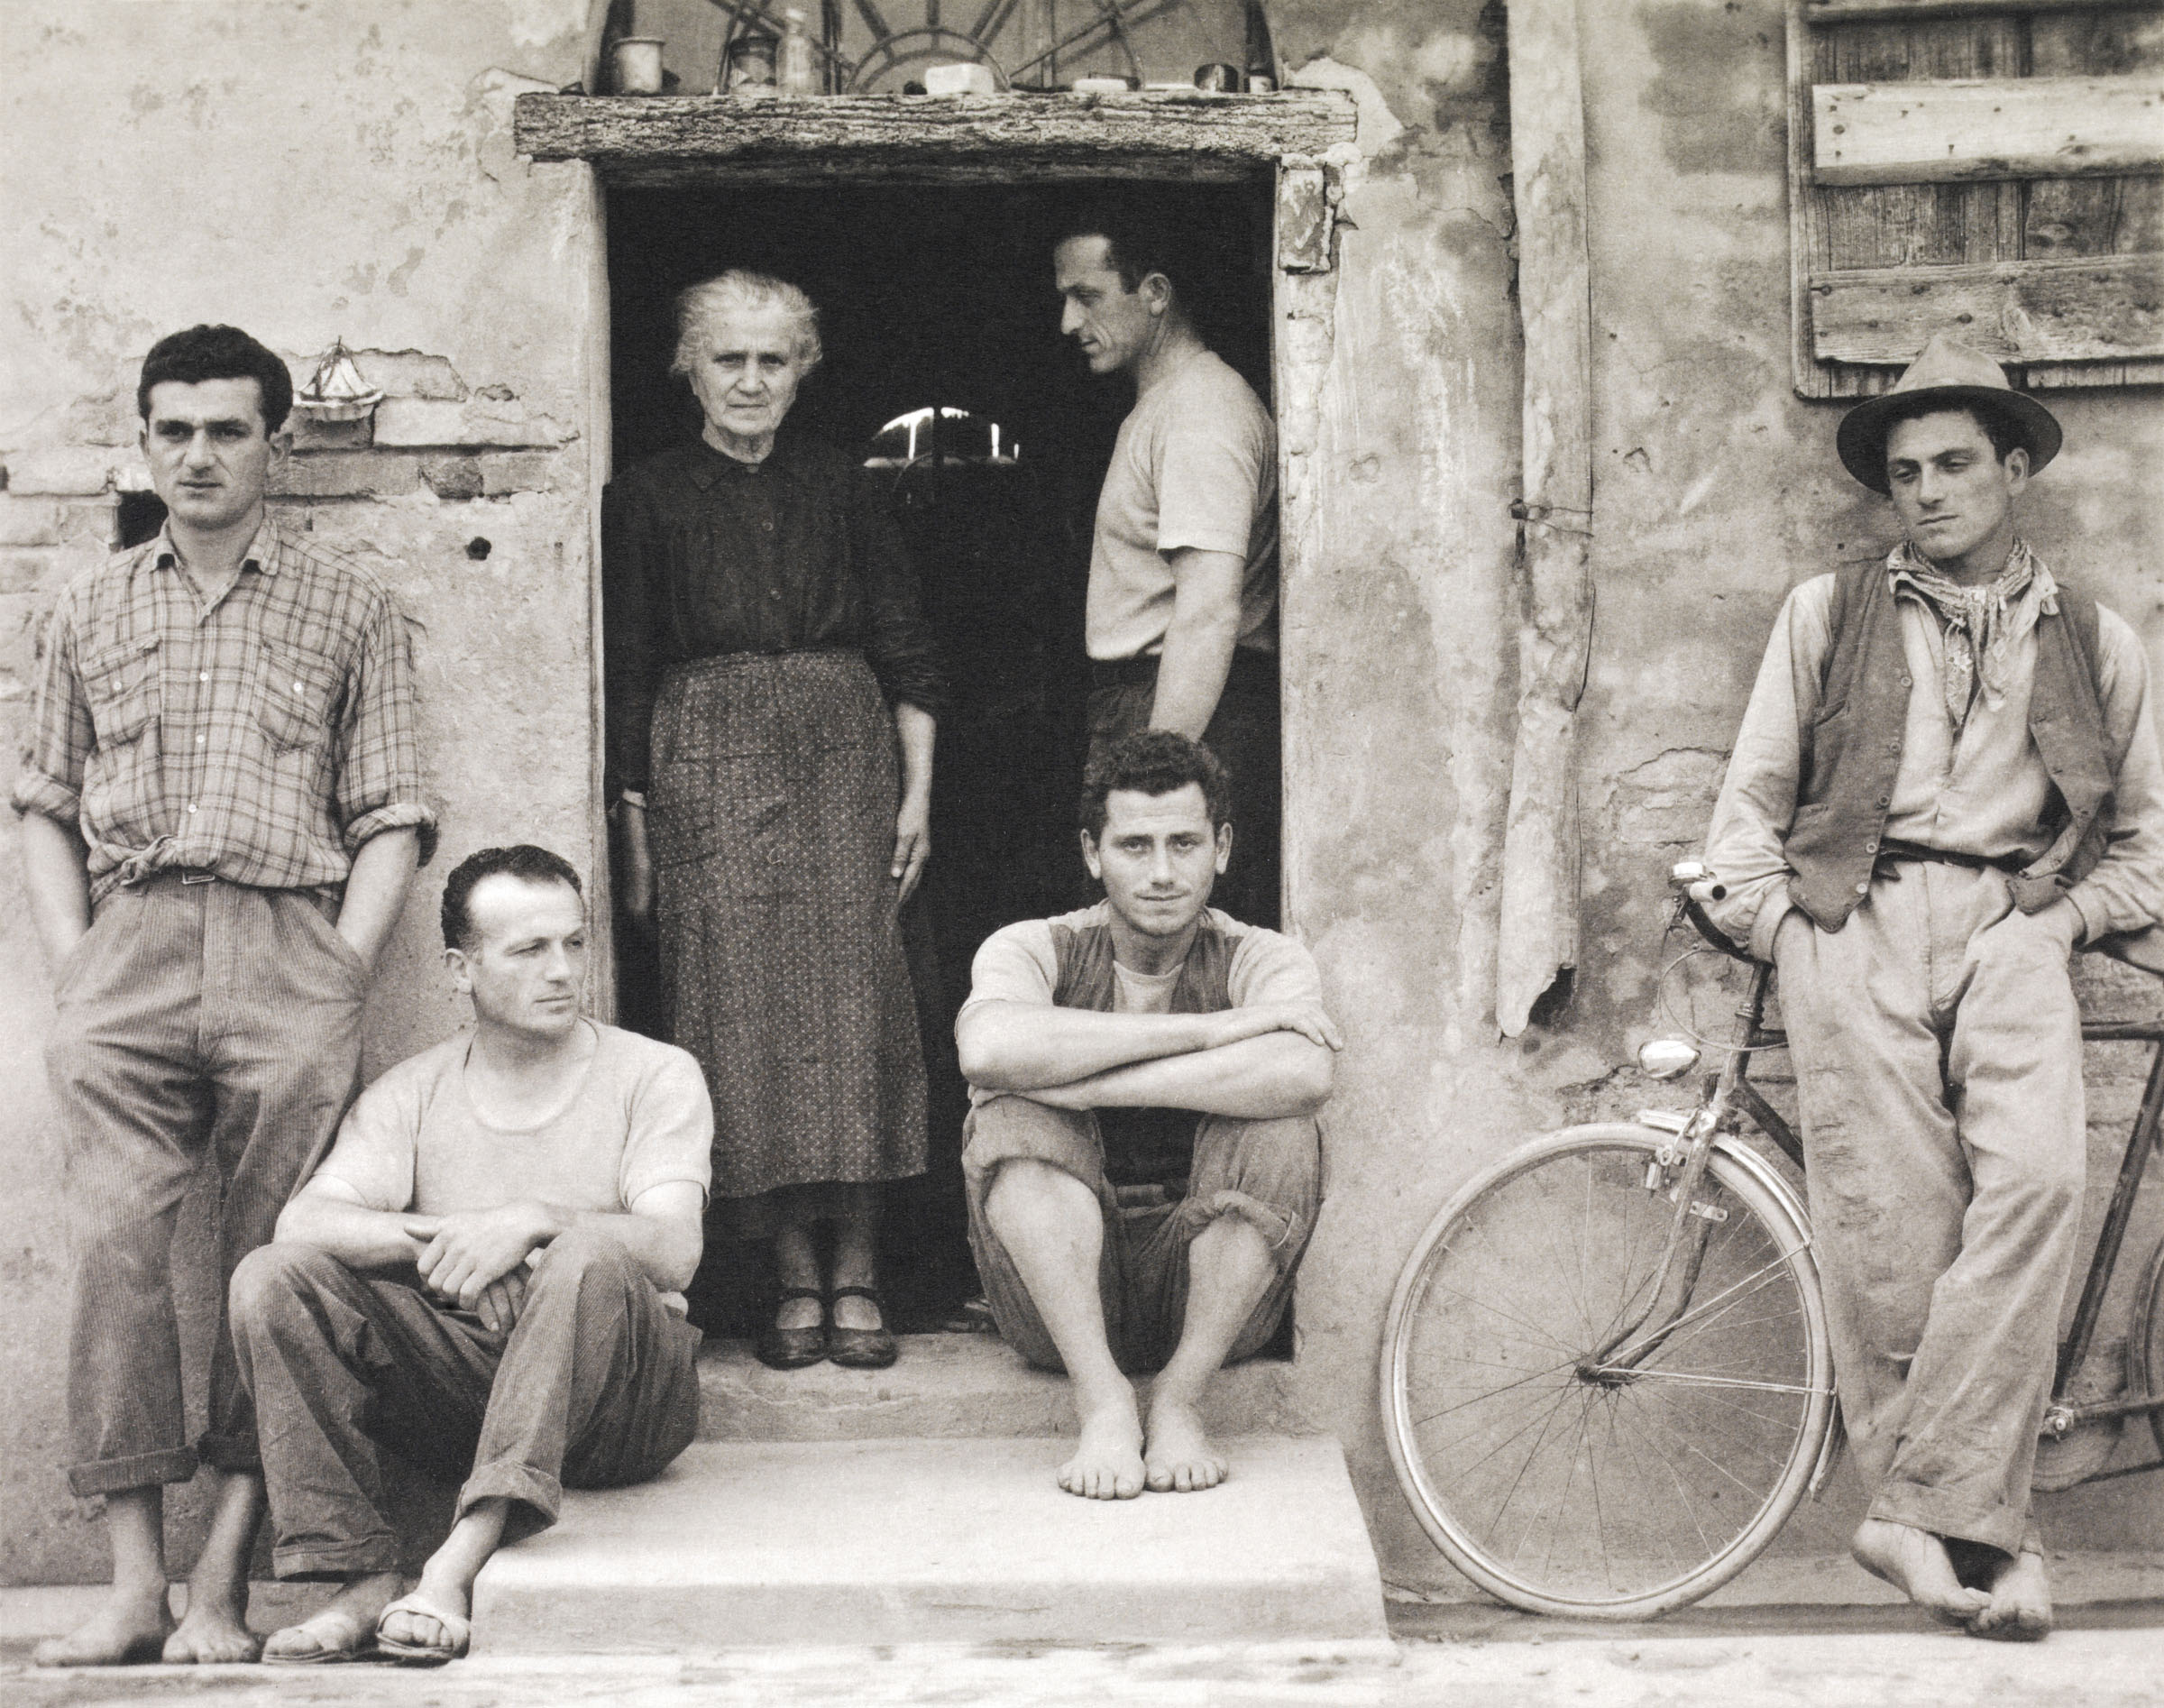 Paul Strand, The Family, Luzzara Paul Strand Cesare Zavattini Un paese Einaudi editore, 1955